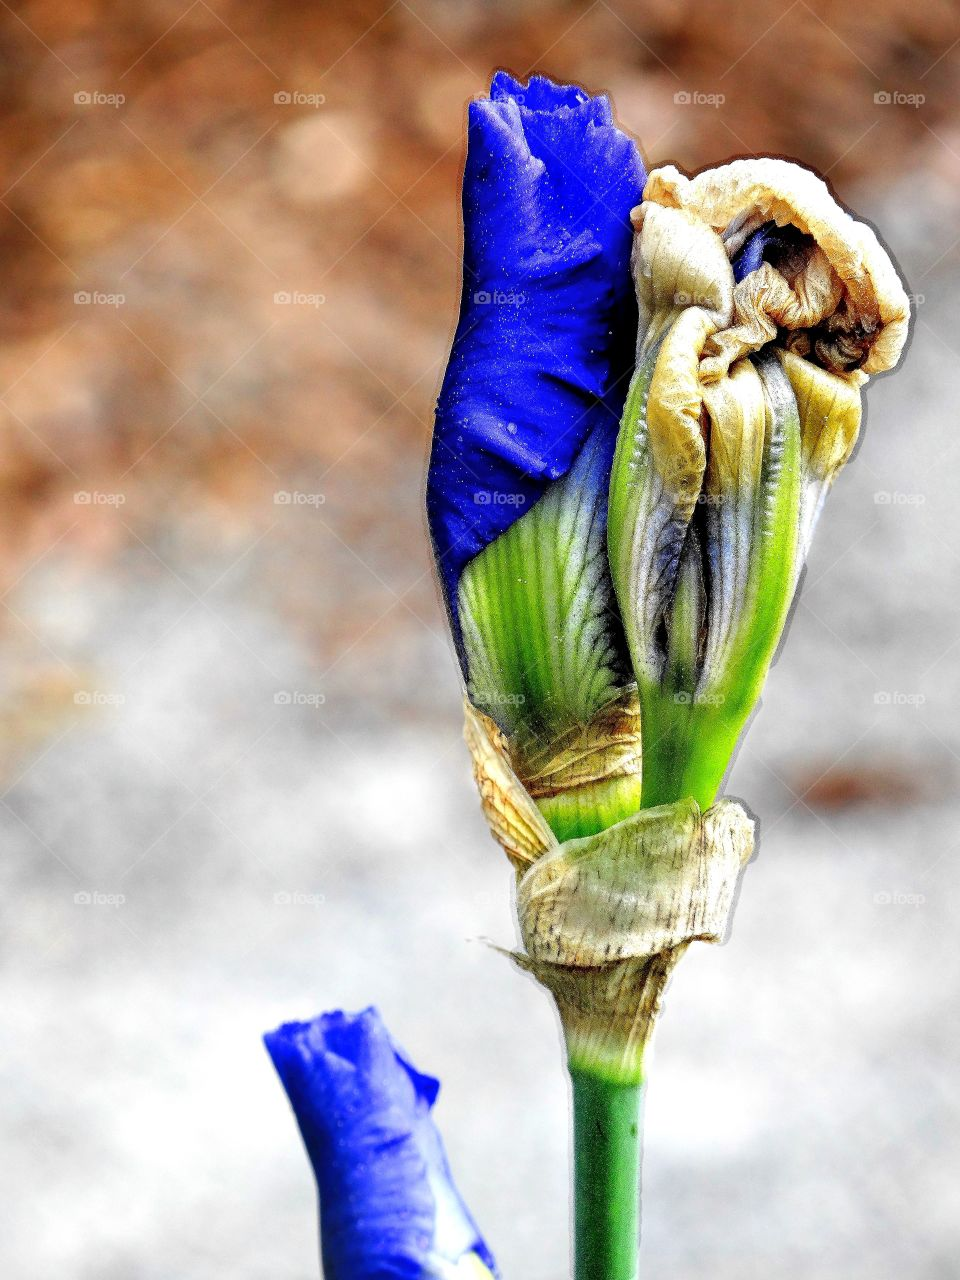 blue iris unfurls. Several blue iris buds in various degrees of unfurling their leaves and letting their glorious blue color into the world for all to enjoy!